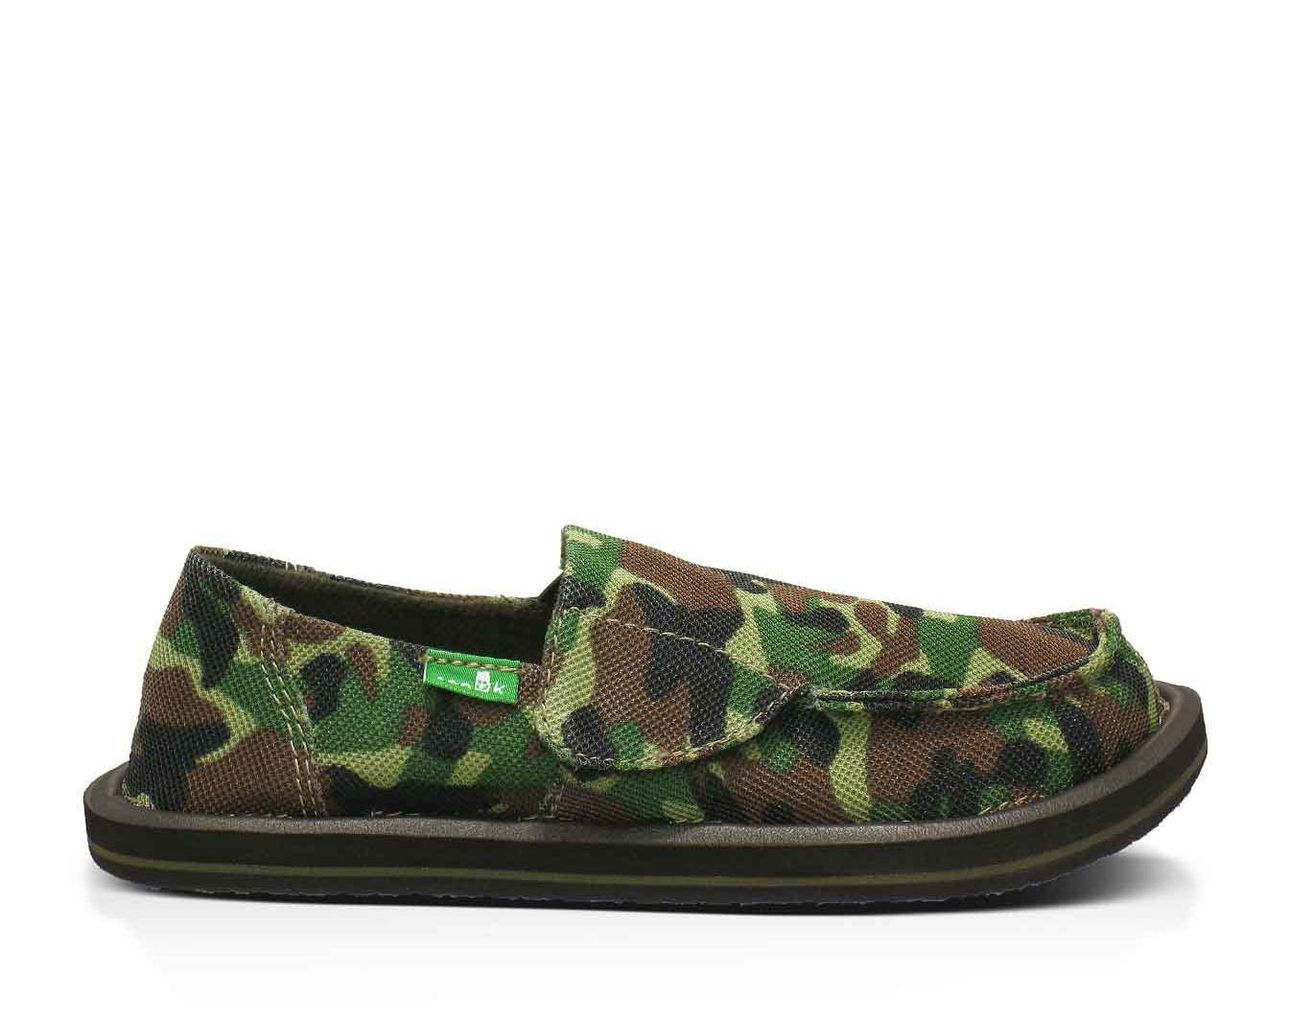 Shop Sanuk for the Army Brat sidewalk surfers for toddlers. Free returns & exchanges. Sanuk - smile, pass it on.